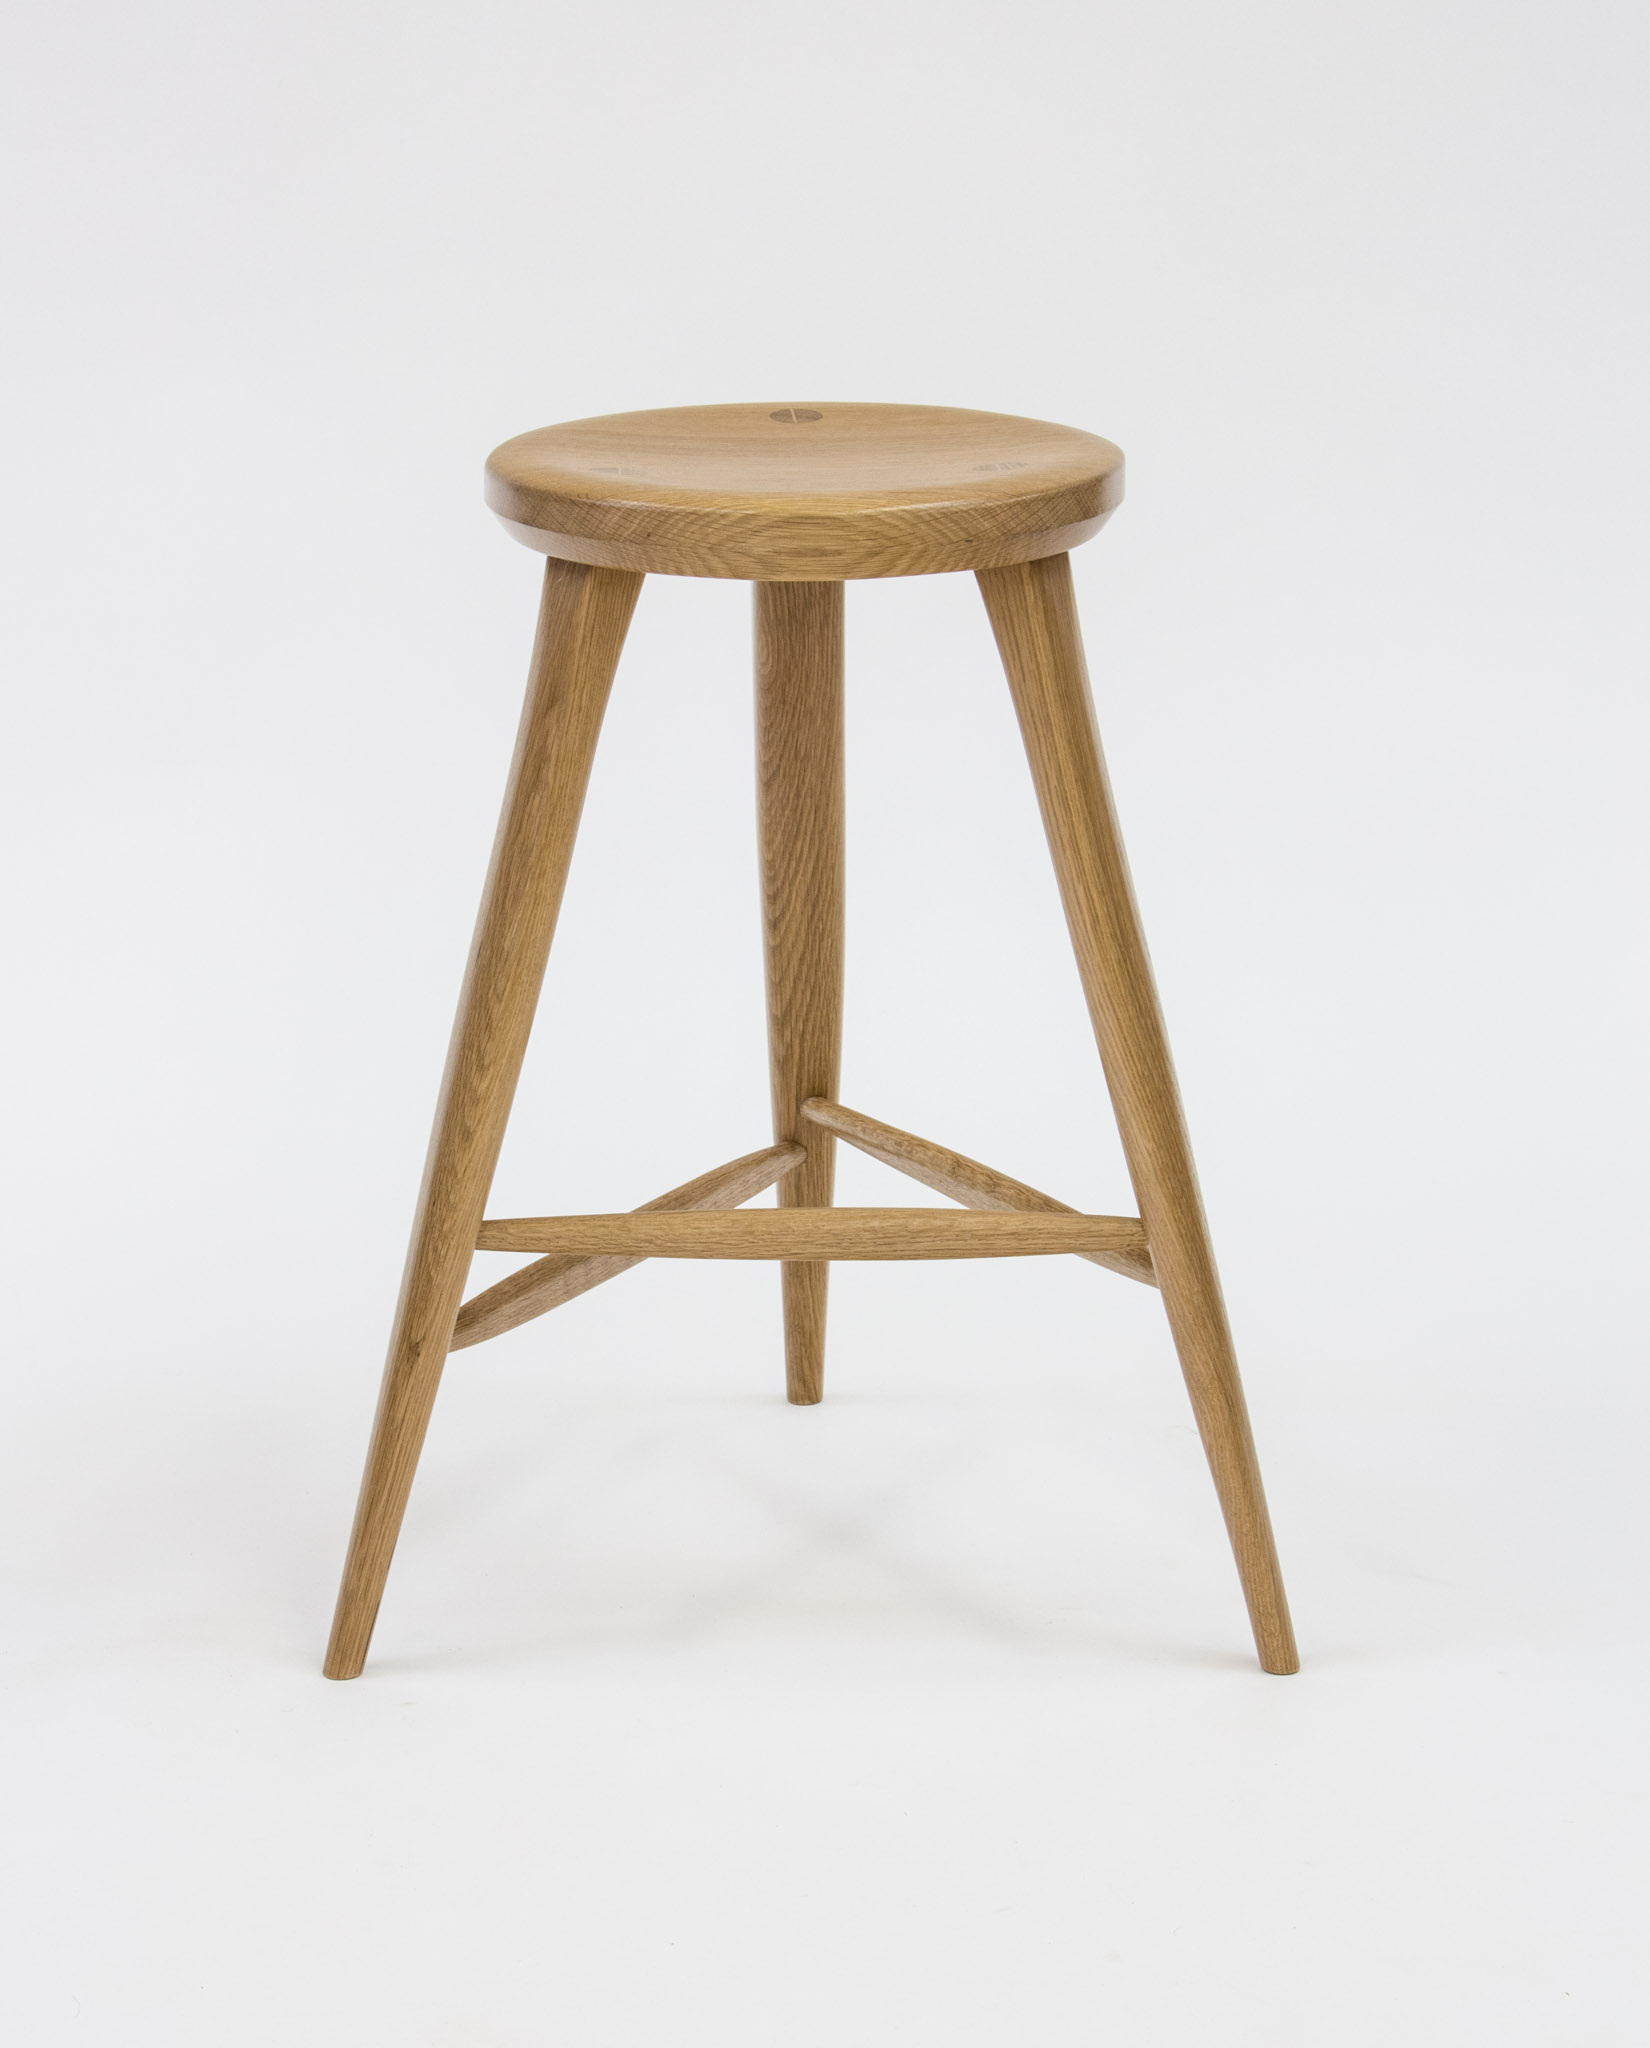 Hinkley oak stool